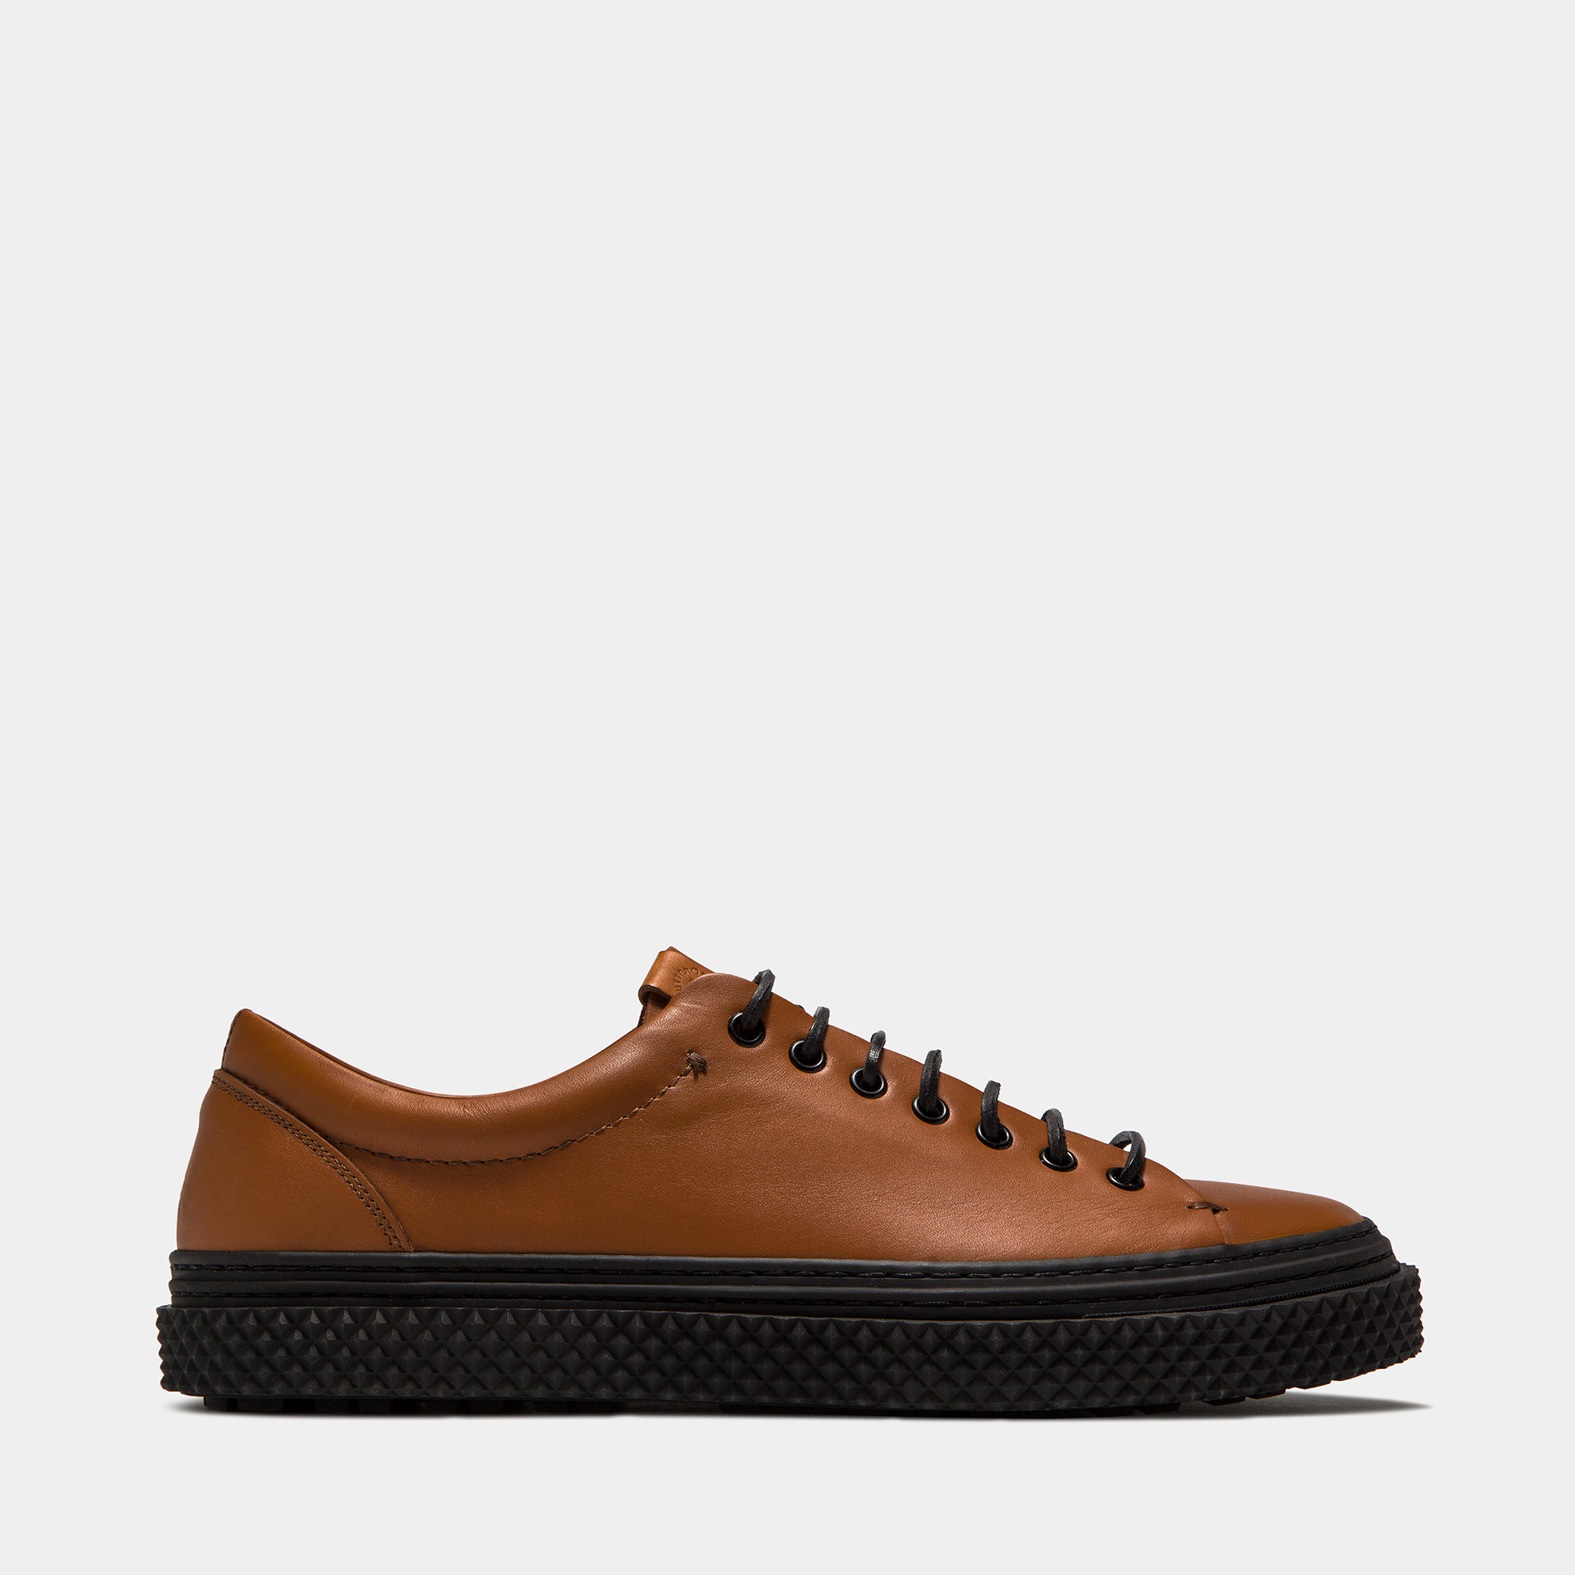 BUTTERO: COLLODI SNEAKERS IN NATURAL BROWN PULL EFFECT LEATHER